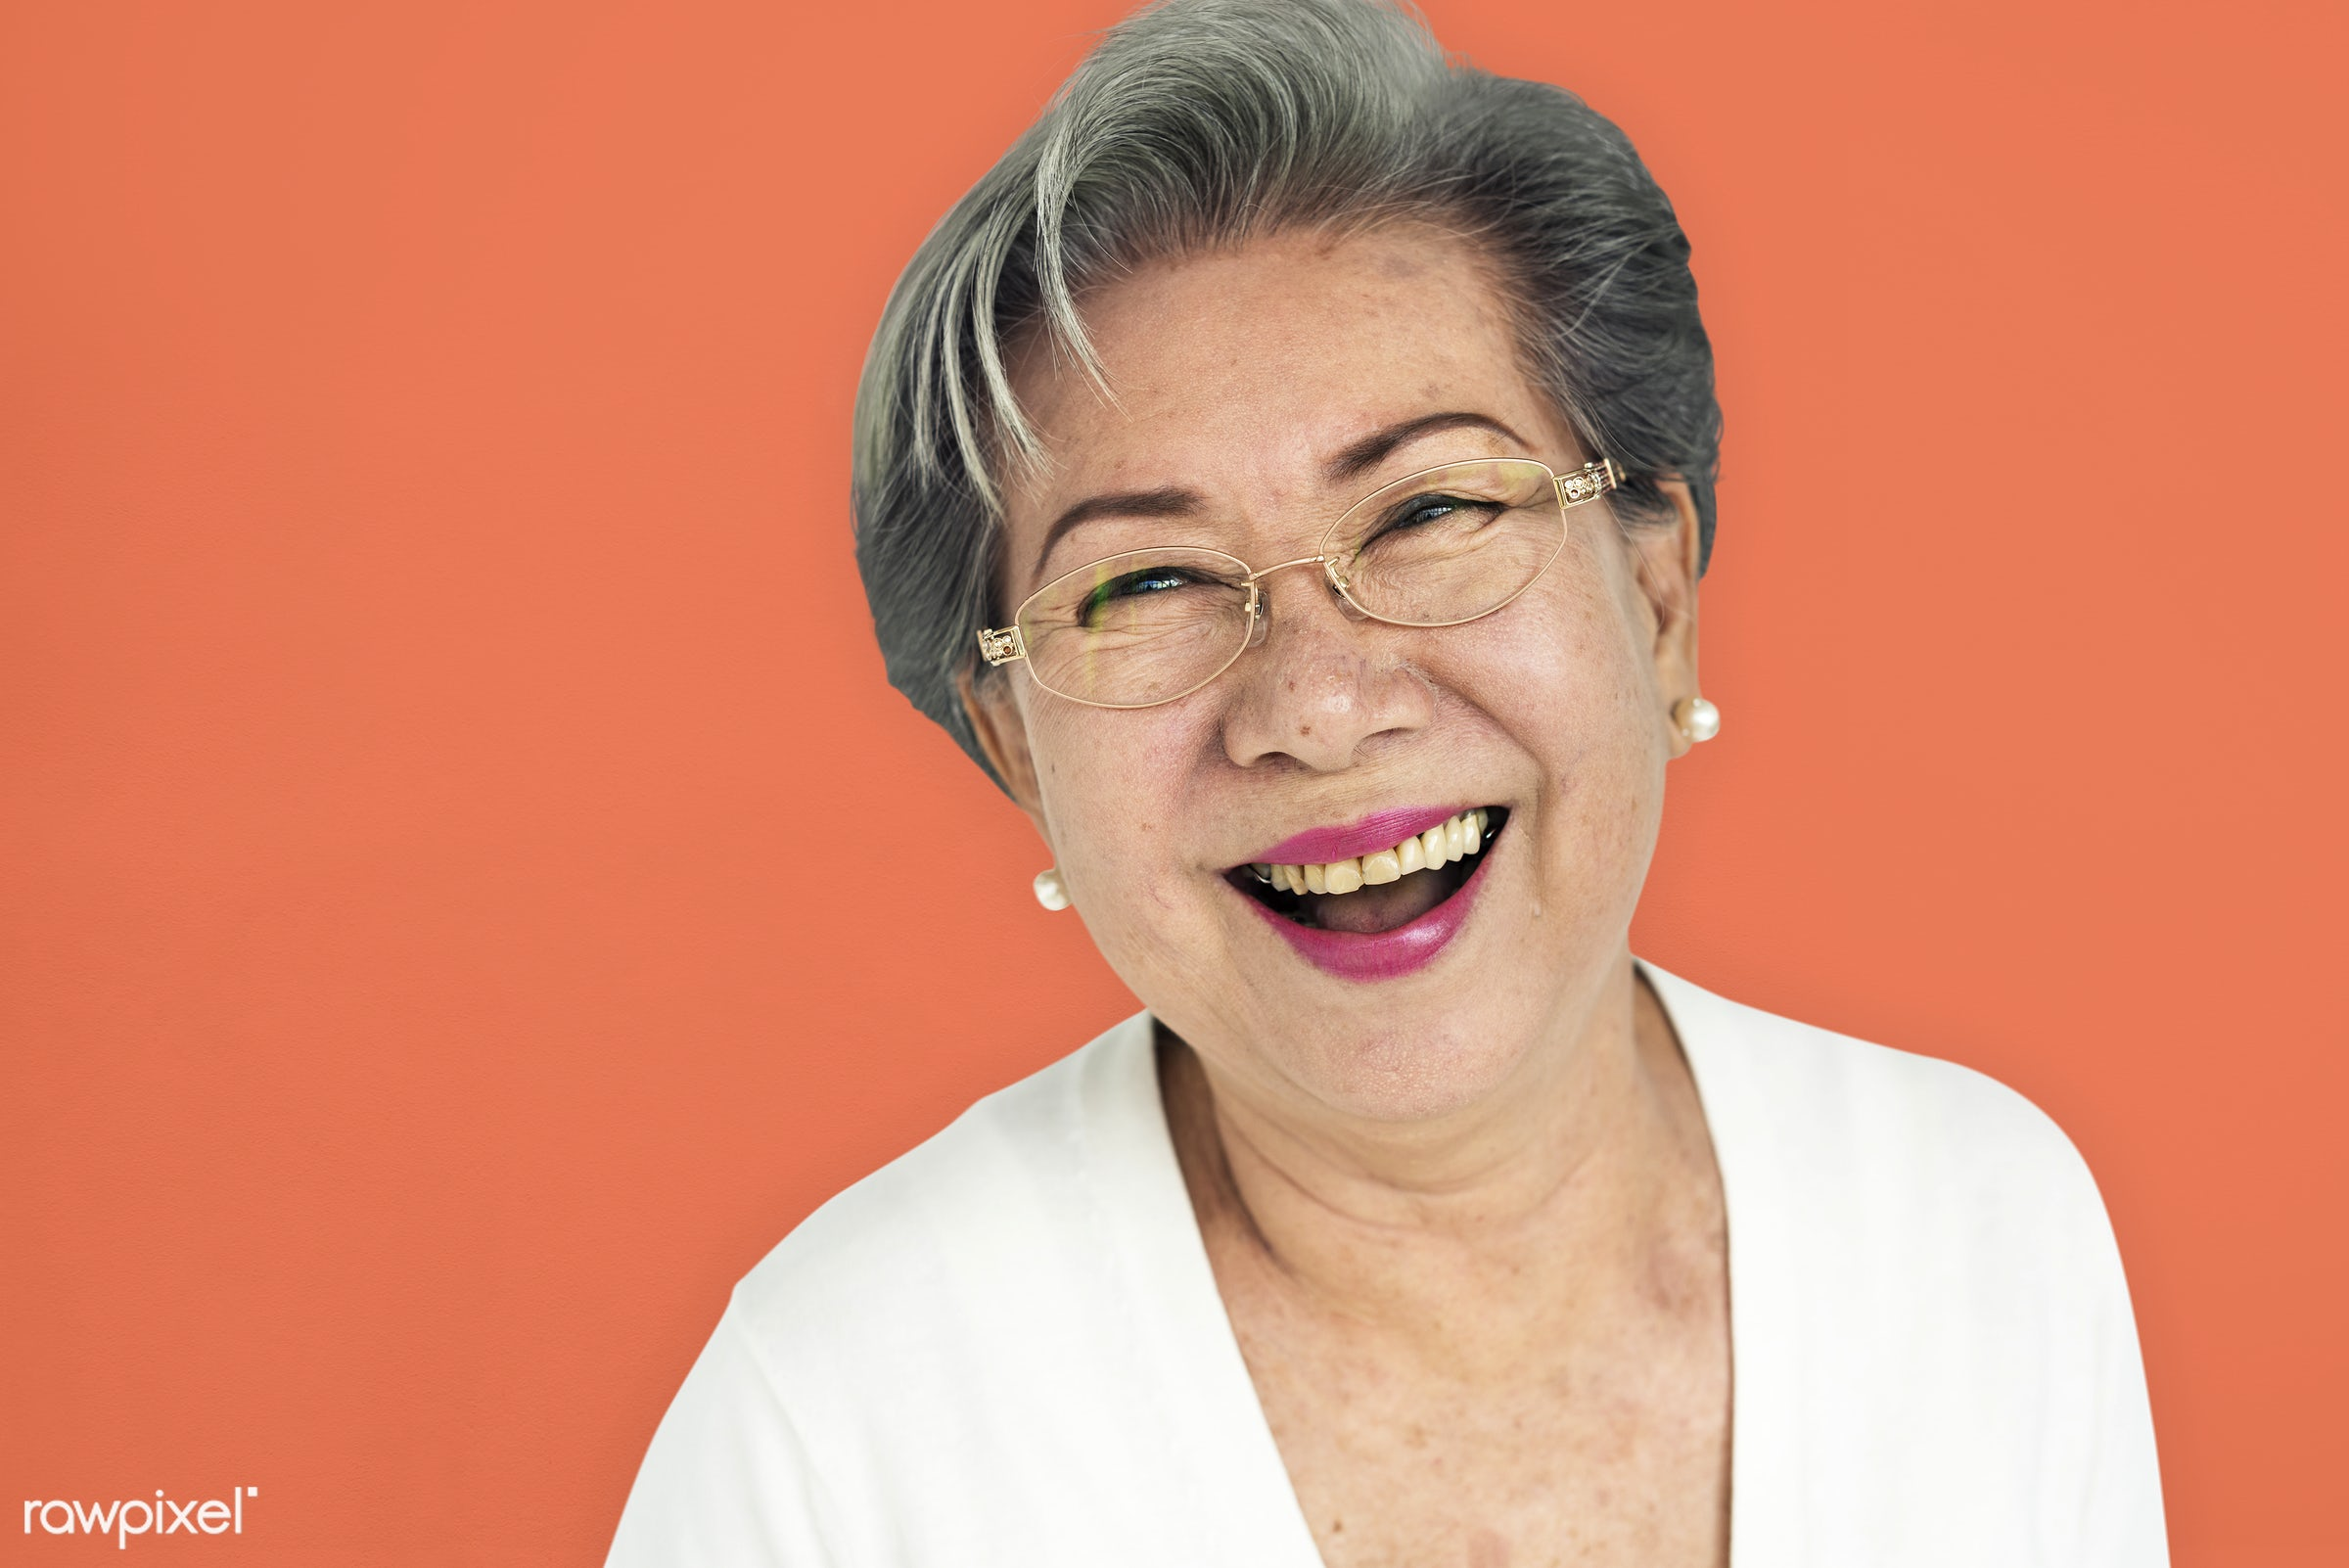 studio, expression, person, people, asian, woman, cheerful, smiling, isolated, orange, happiness, portrait, emotion,...